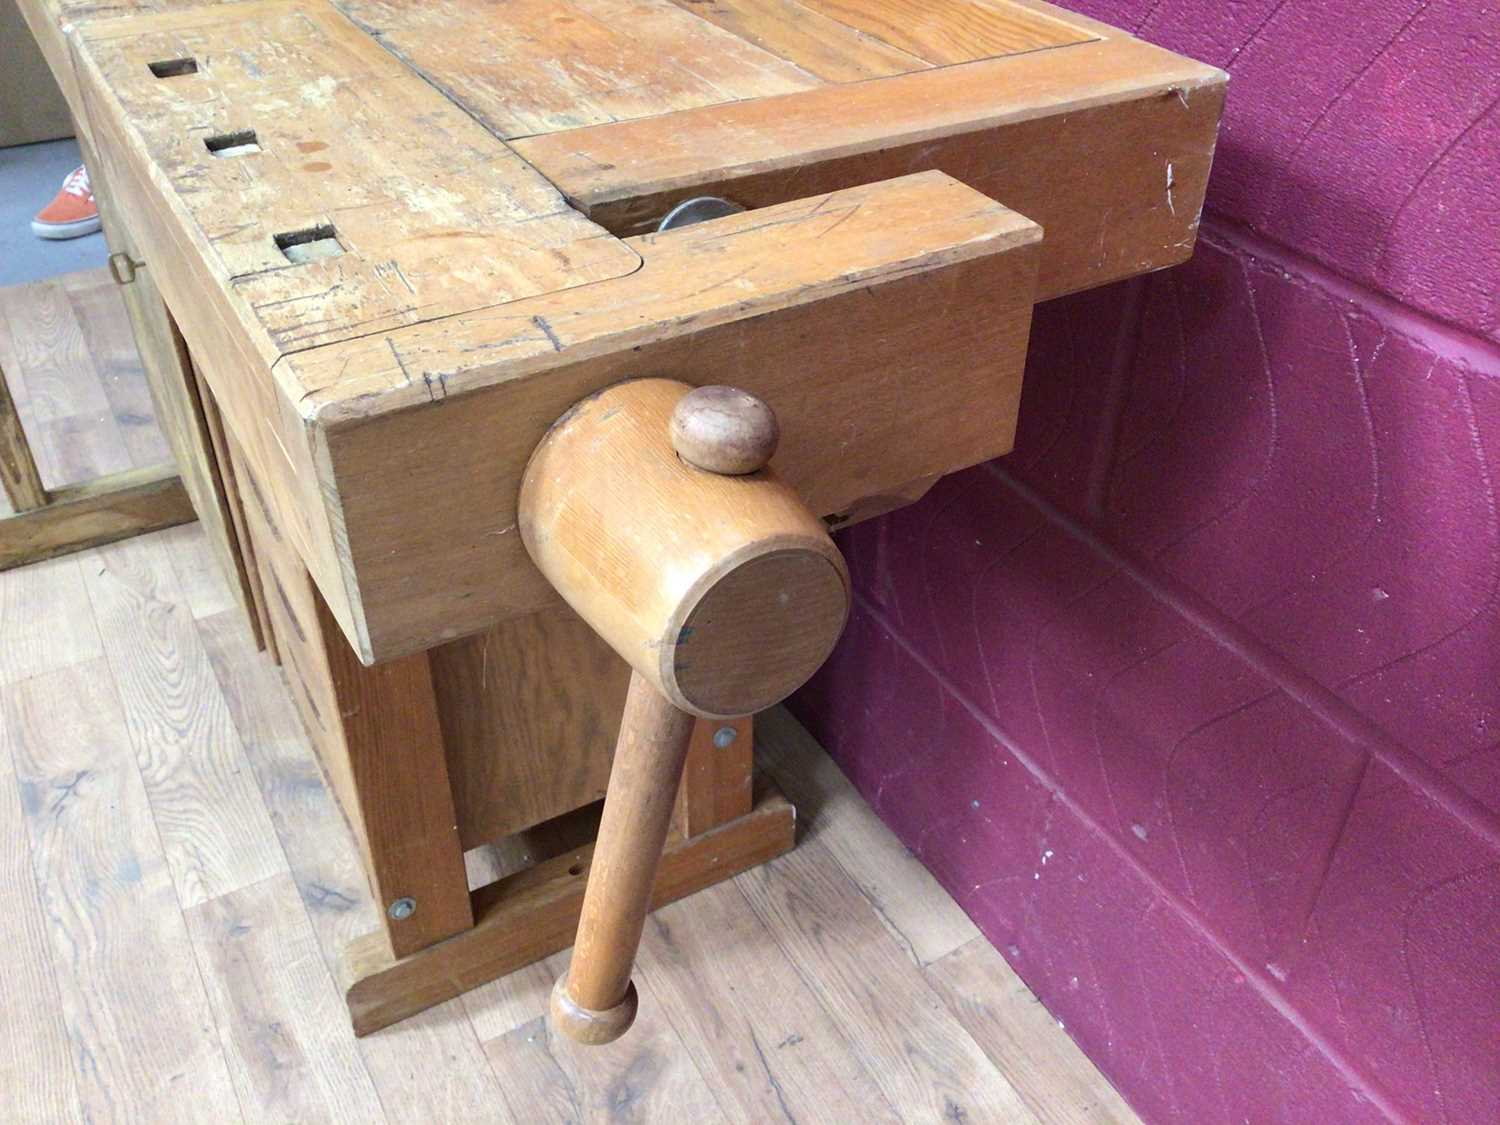 Scandanavian work bench by Gobergs of Sweden - Image 2 of 8